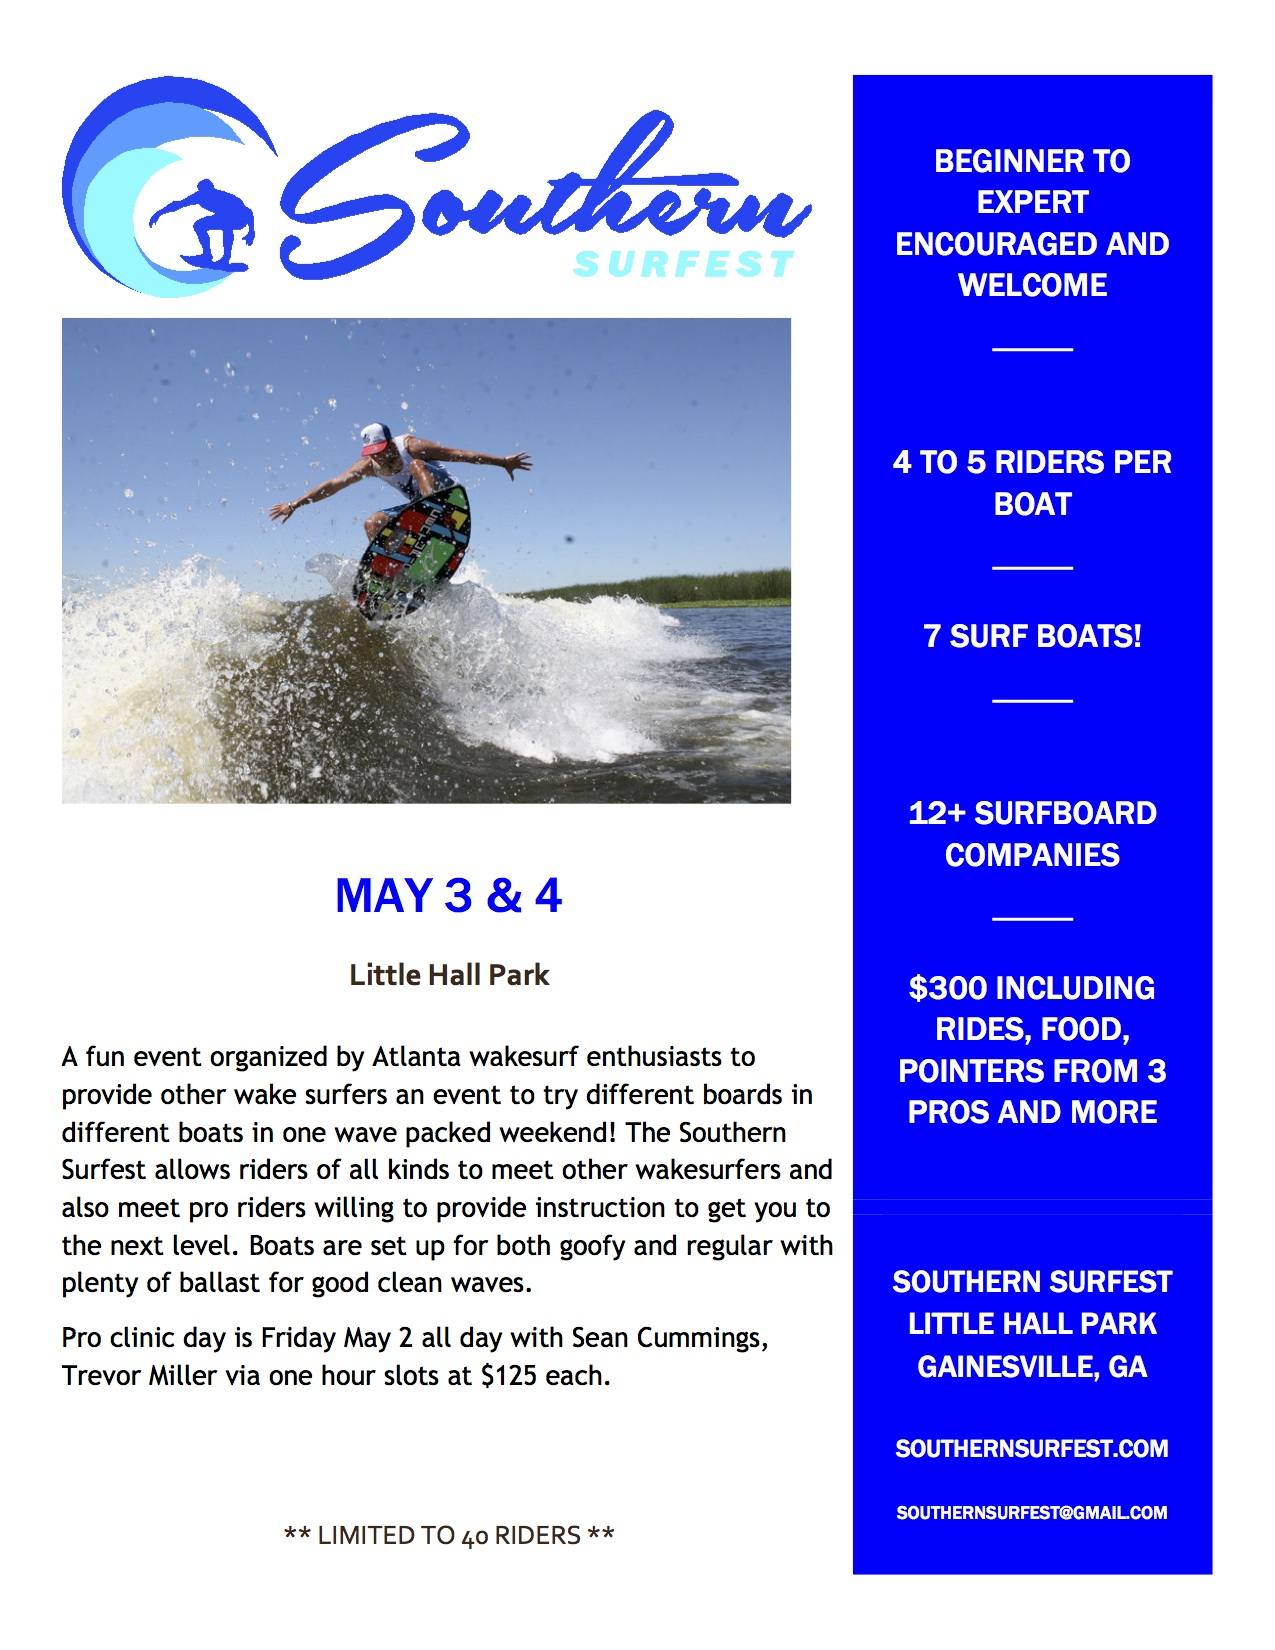 Southern Surfest Event Main Flyer